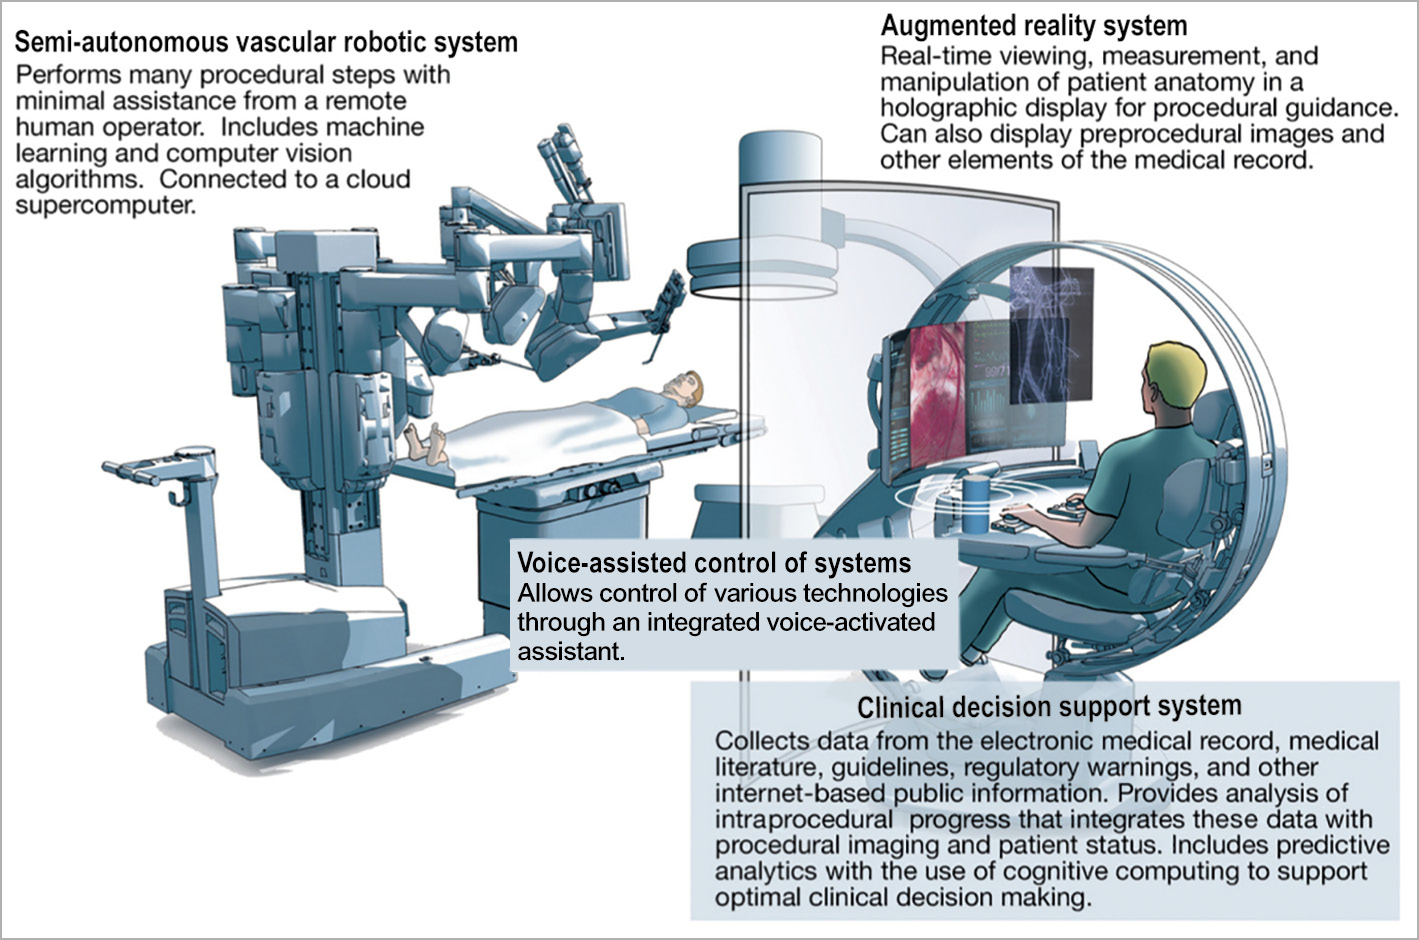 Figure 5. The future catheterisation laboratory with artificial intelligence-enabled technology, clinical decision support system, voice-powered virtual assistant, and augmented reality platforms. A semi-autonomous/autonomous robotic system can provide optimisation as well as the remote operations presented above. Reprinted from Figure 2 of Sardar et al30, copyright (2019), with permission from Elsevier.